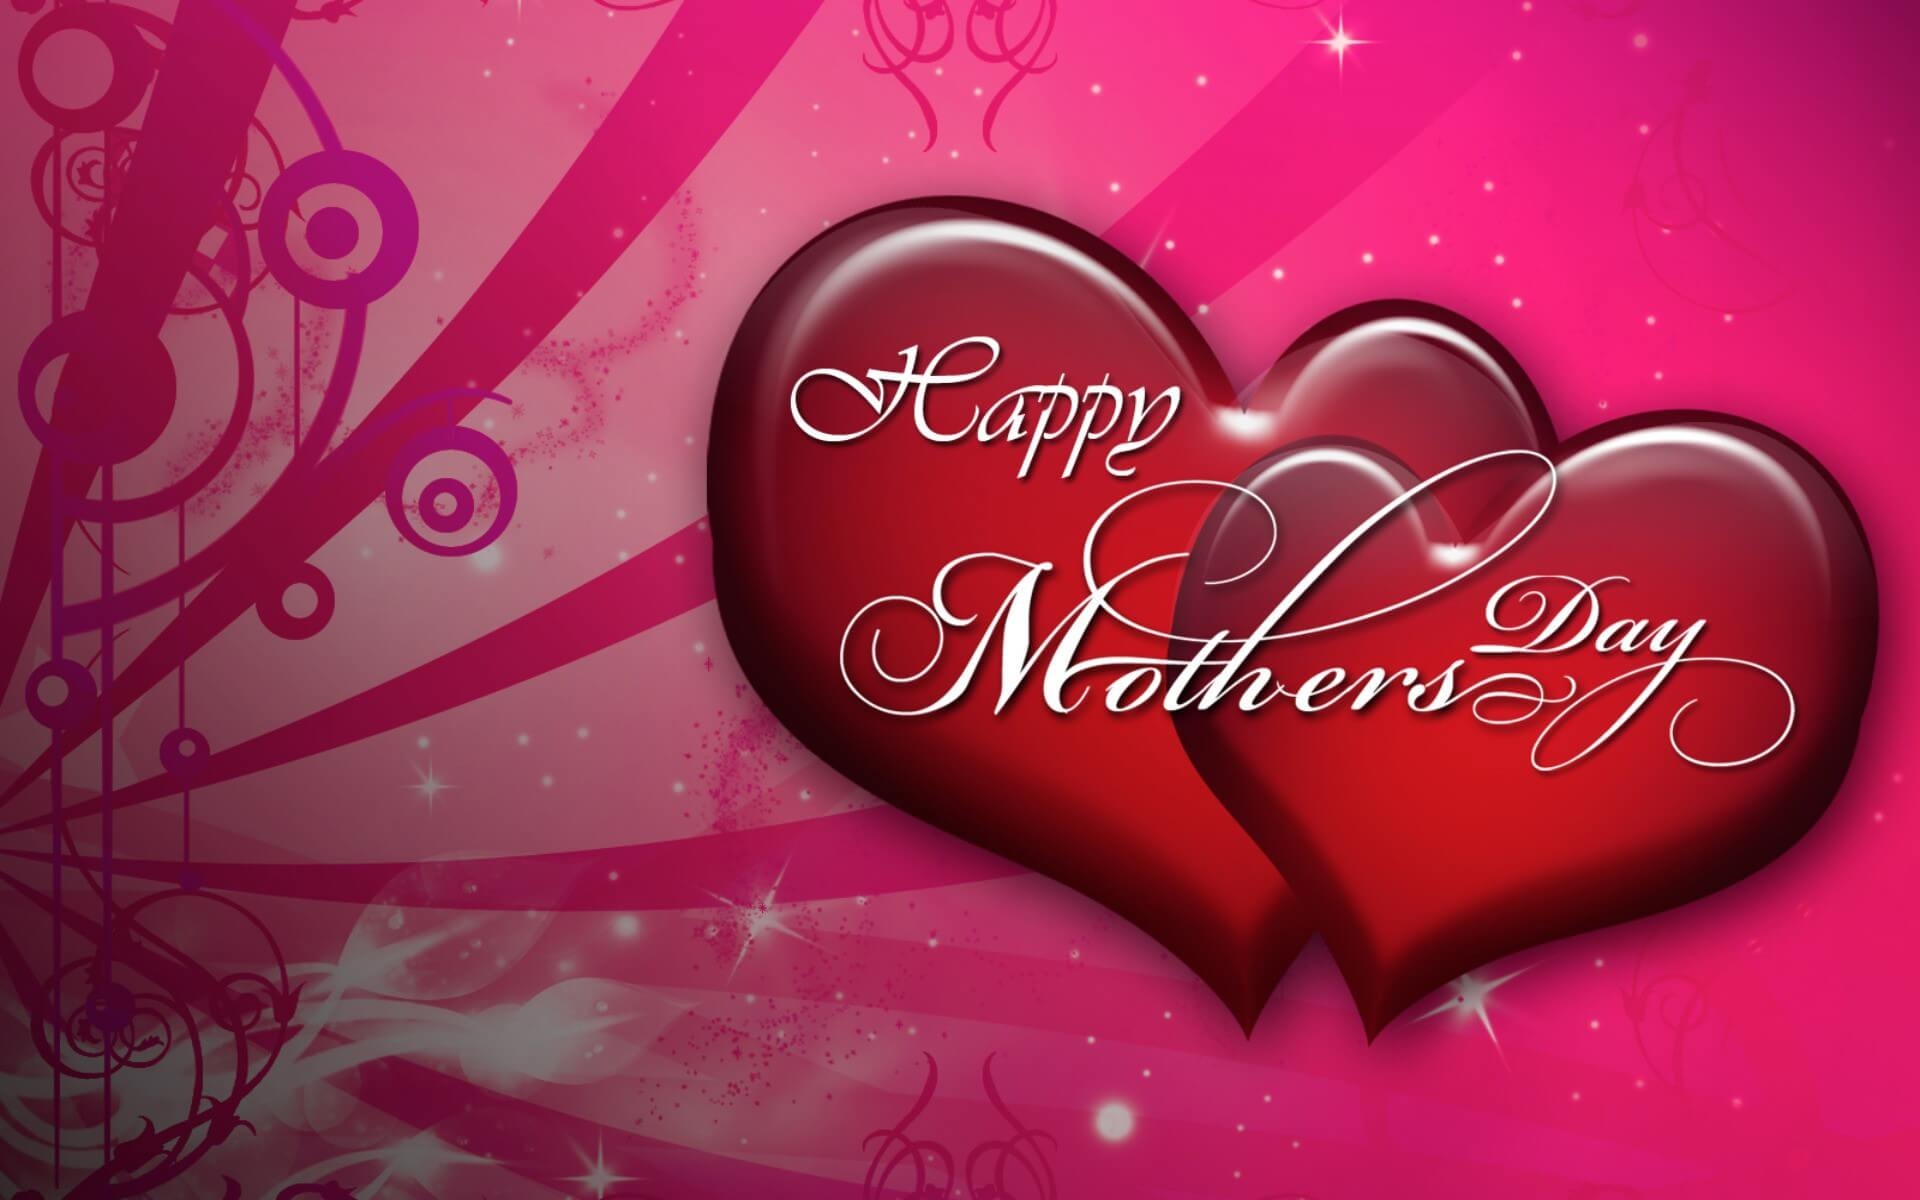 happy mothers day wishes hearts hd wallpaper background